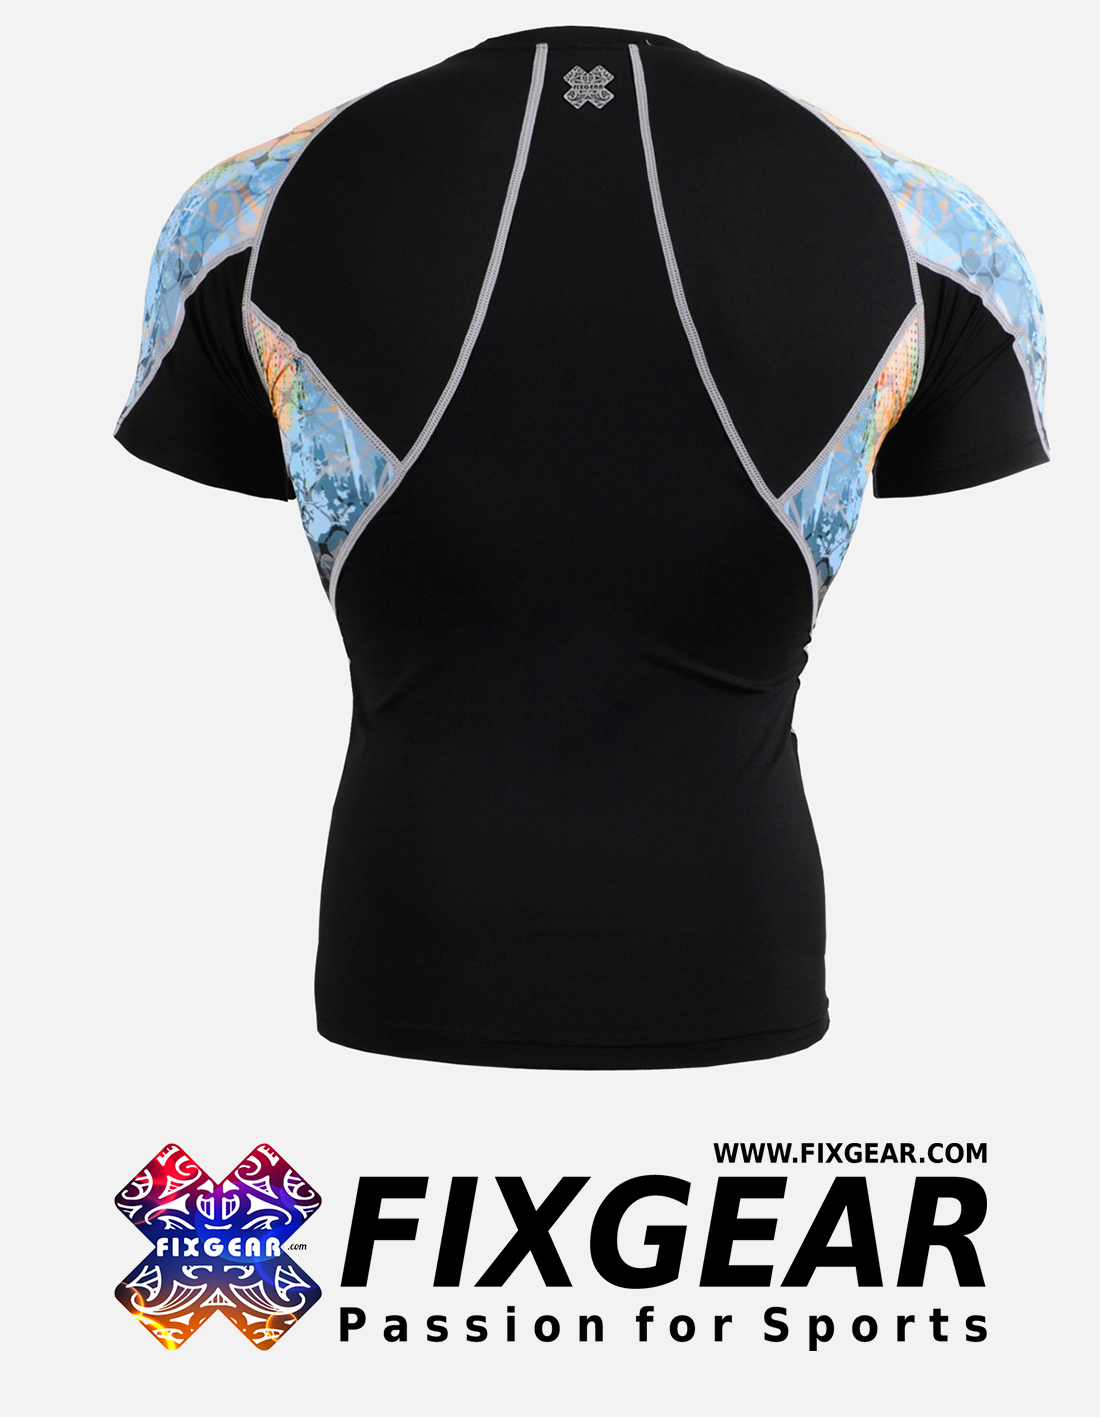 FIXGEAR C2S-B42 Compression Base Layer Shirt Short Sleeve